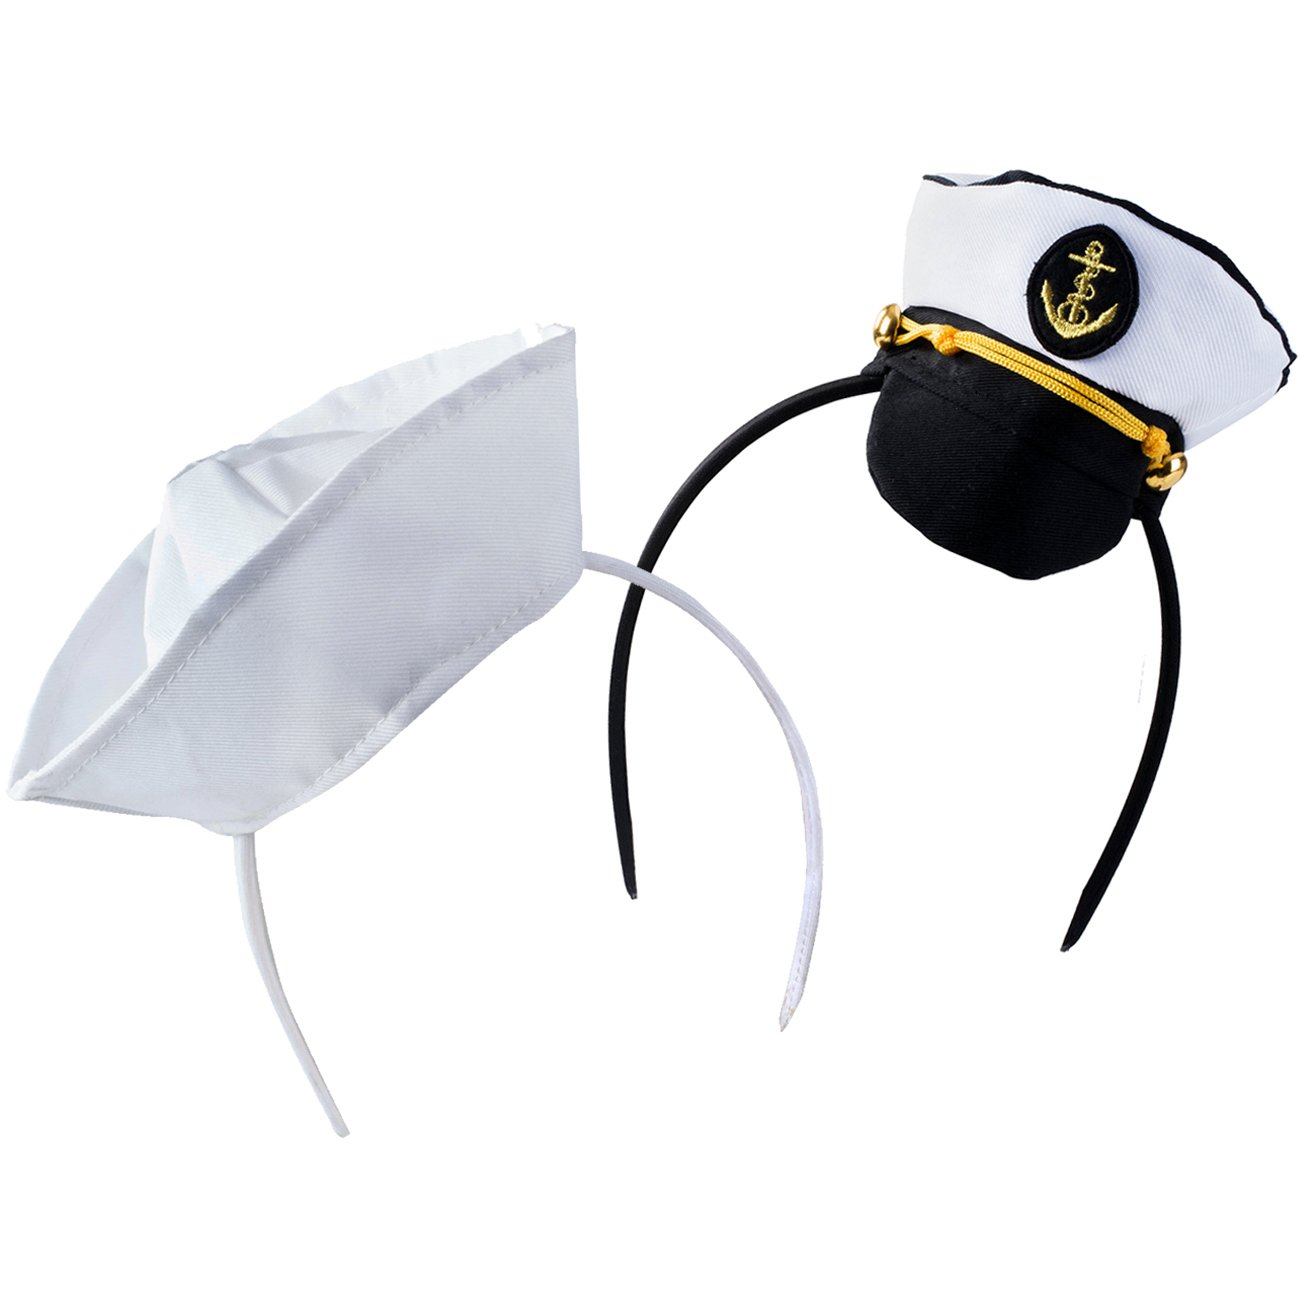 12 white sailor hats one dz hats fits kids and average adults by Unknown